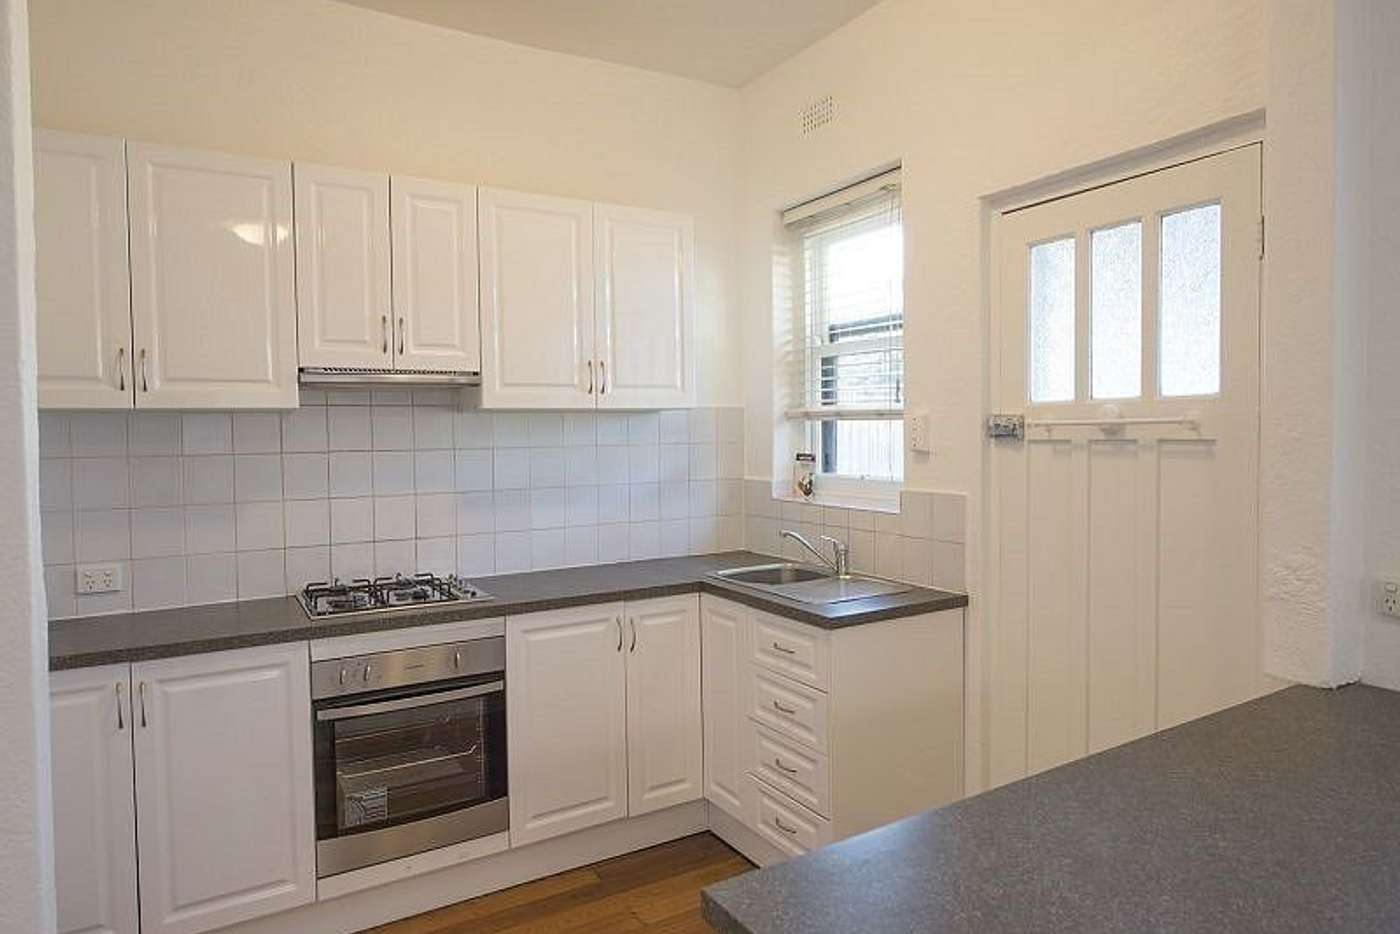 Main view of Homely apartment listing, 2/296 New Street, Brighton VIC 3186